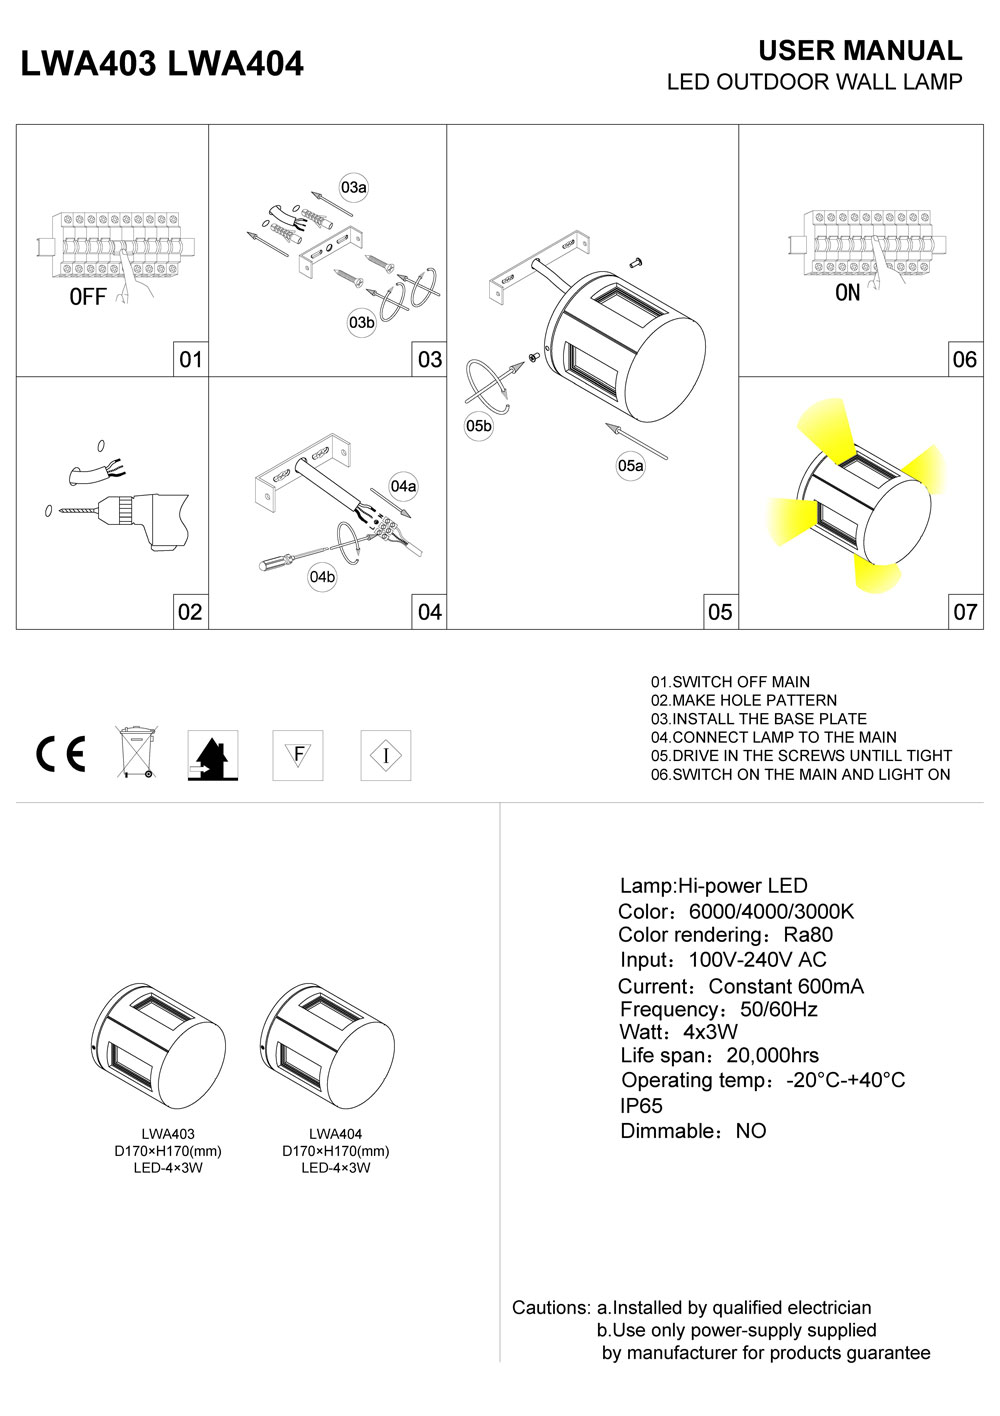 LWA403-LWA404 decorative outdoor wall light installation guide